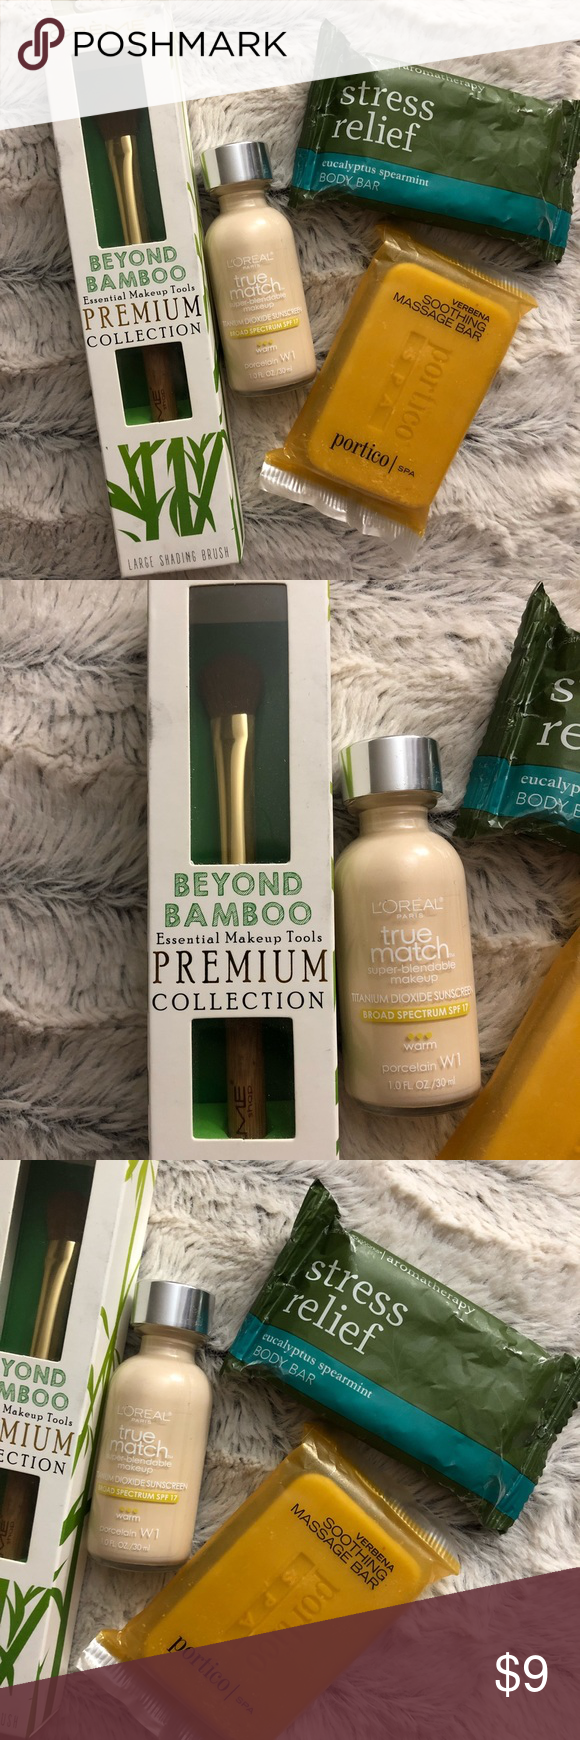 NEW L'Oréal truematch W1 & Bamboo Brush & Soaps NWT